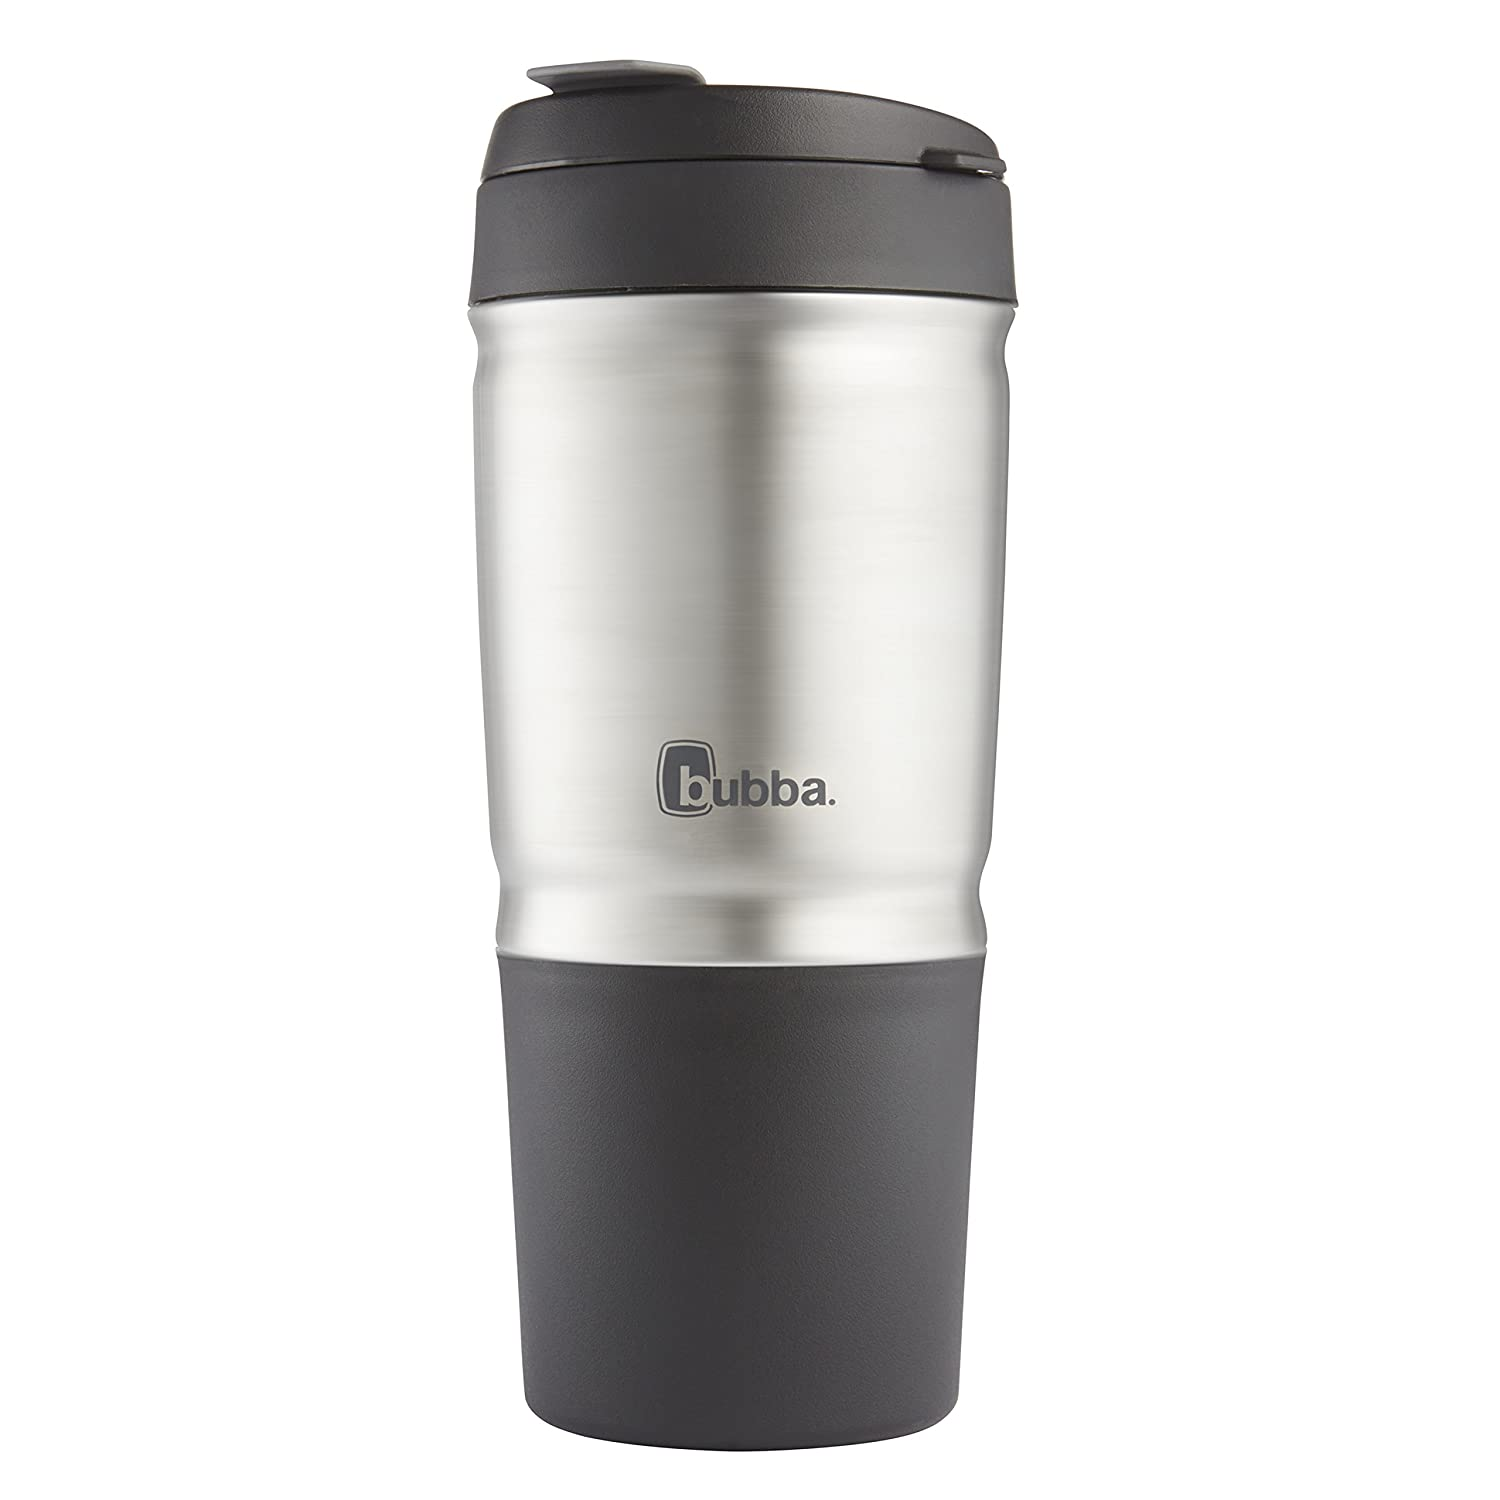 e5e22561bdf Bubba Classic Insulated Travel Mug, 24 oz., Black